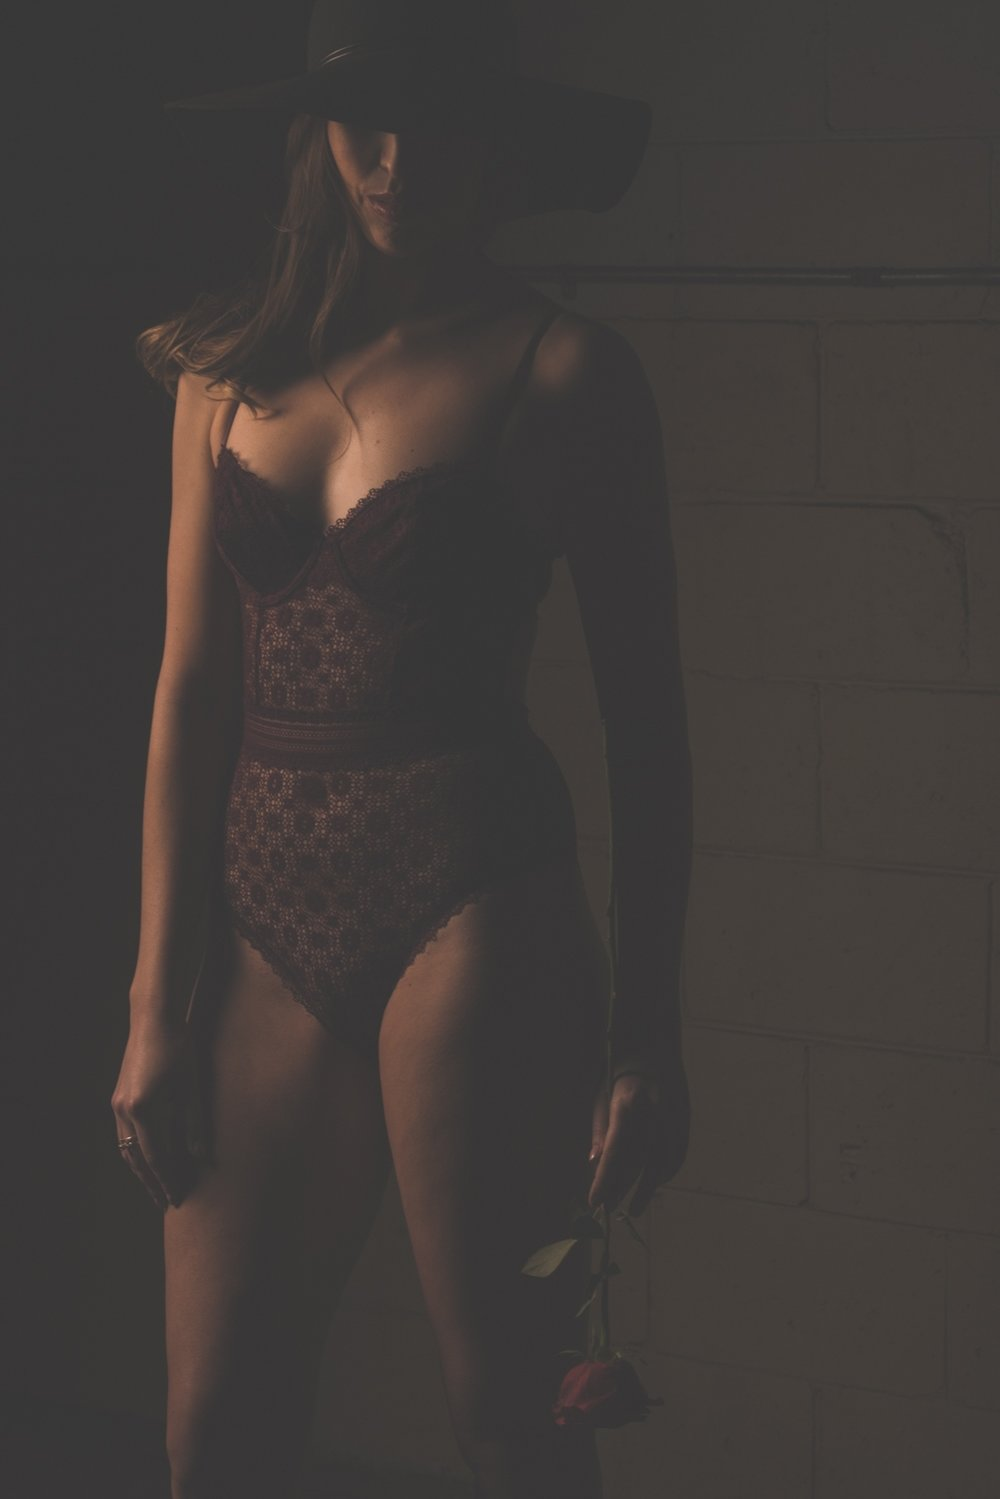 Hamilton Boudoir Session with Soundslikeyellowphotography. Toronto Boudoir Session with Soundslikeyellowphotography.